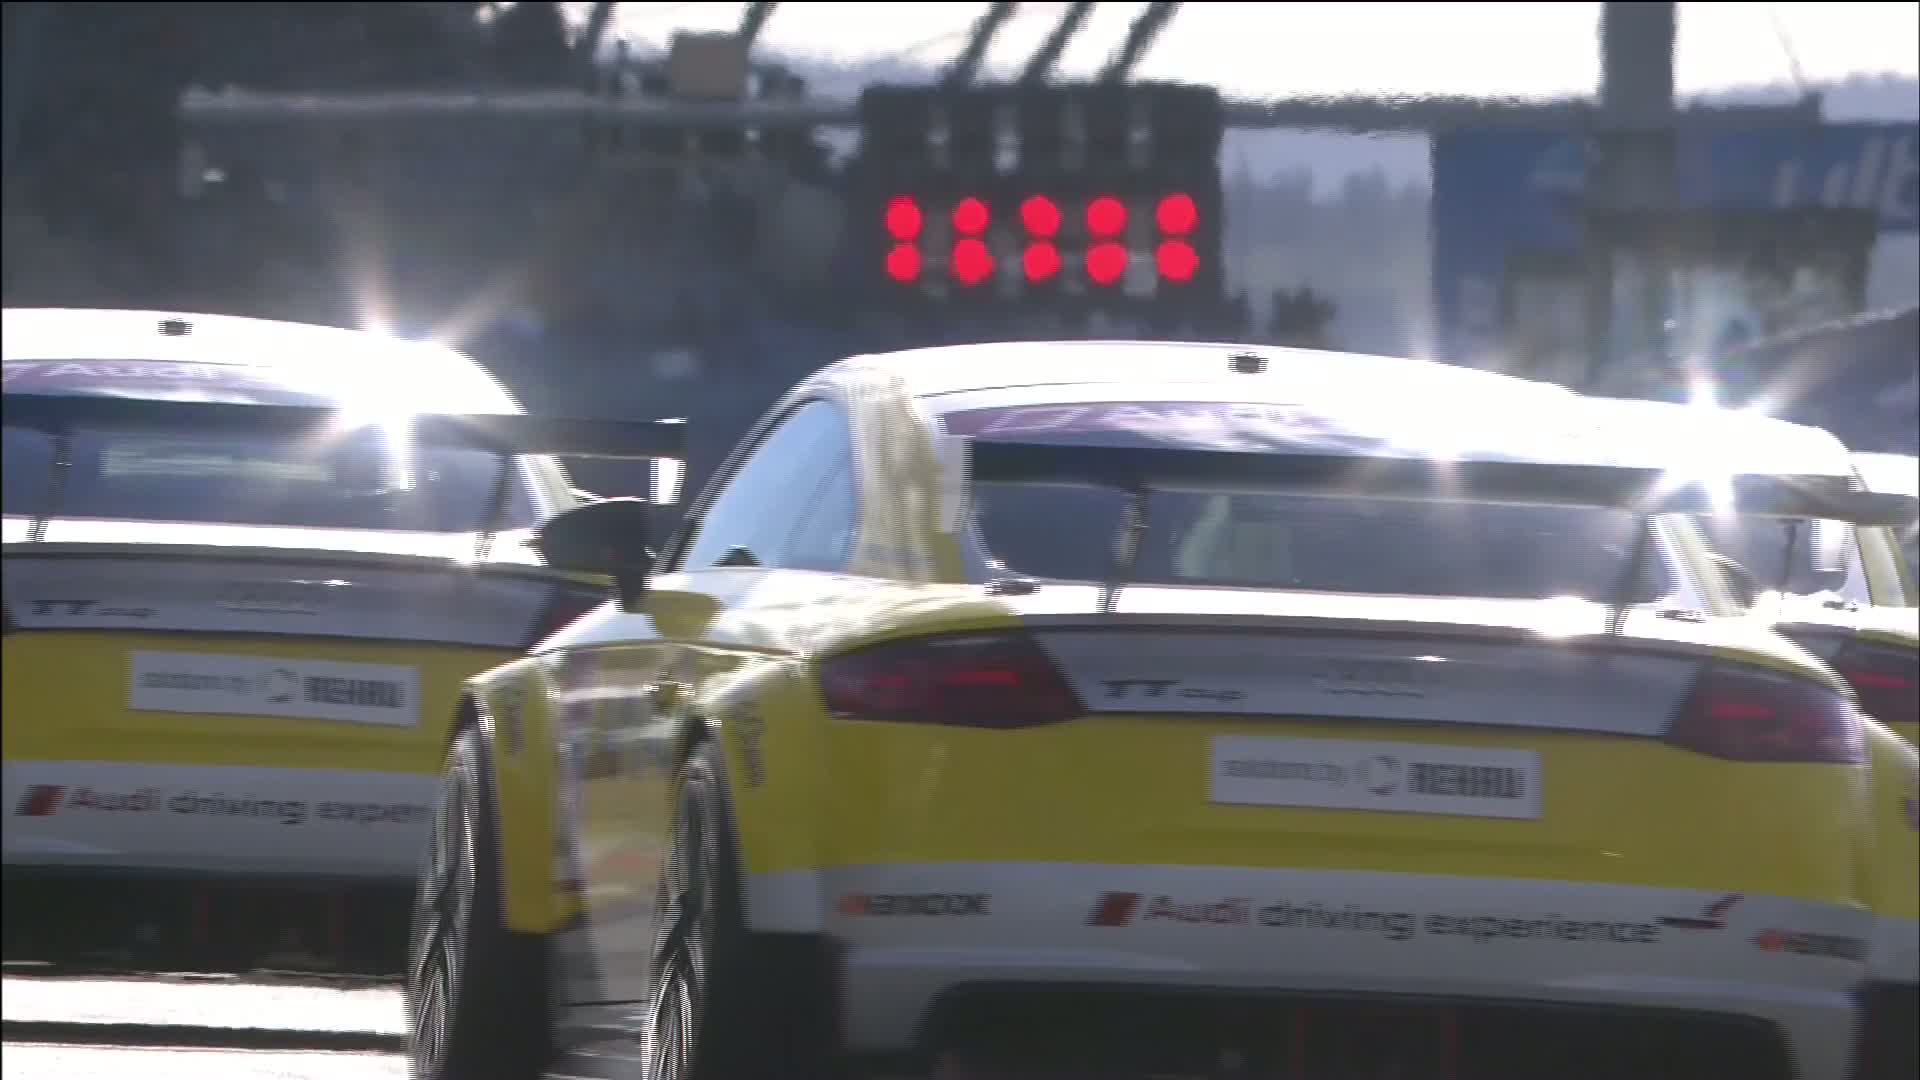 60 Seconds of Audi Sport 88/2015 - TT Cup Nürburgring, Race 2